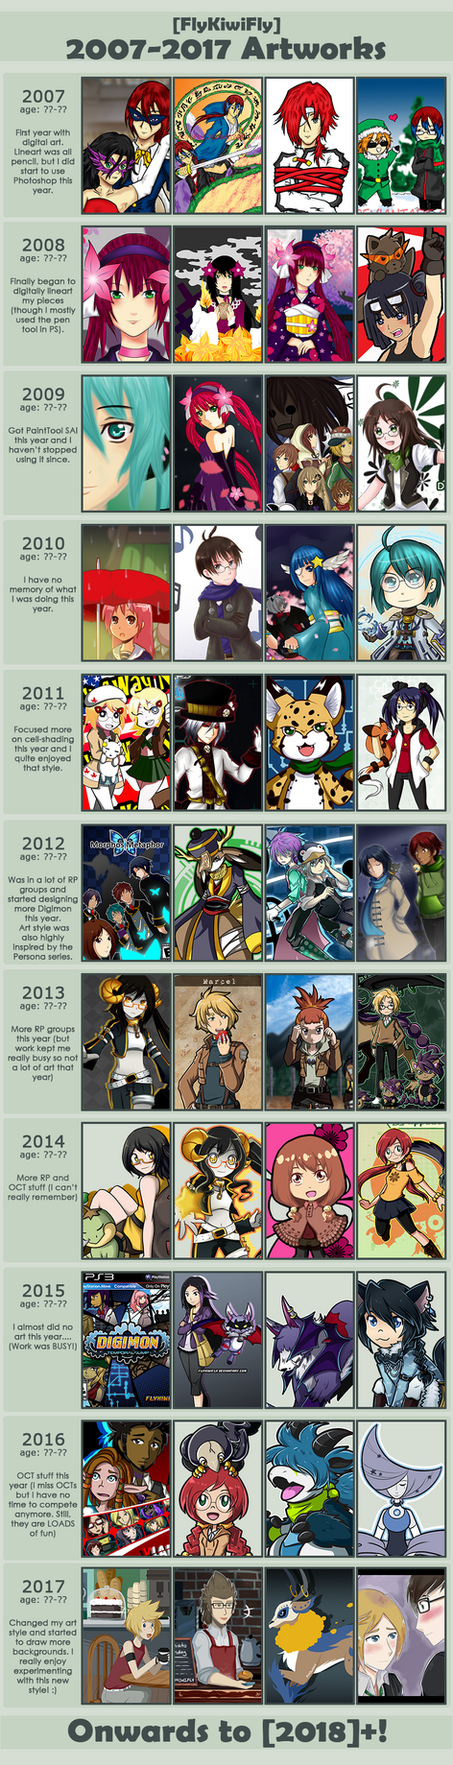 10 Years of Art by FlyKiwiFly